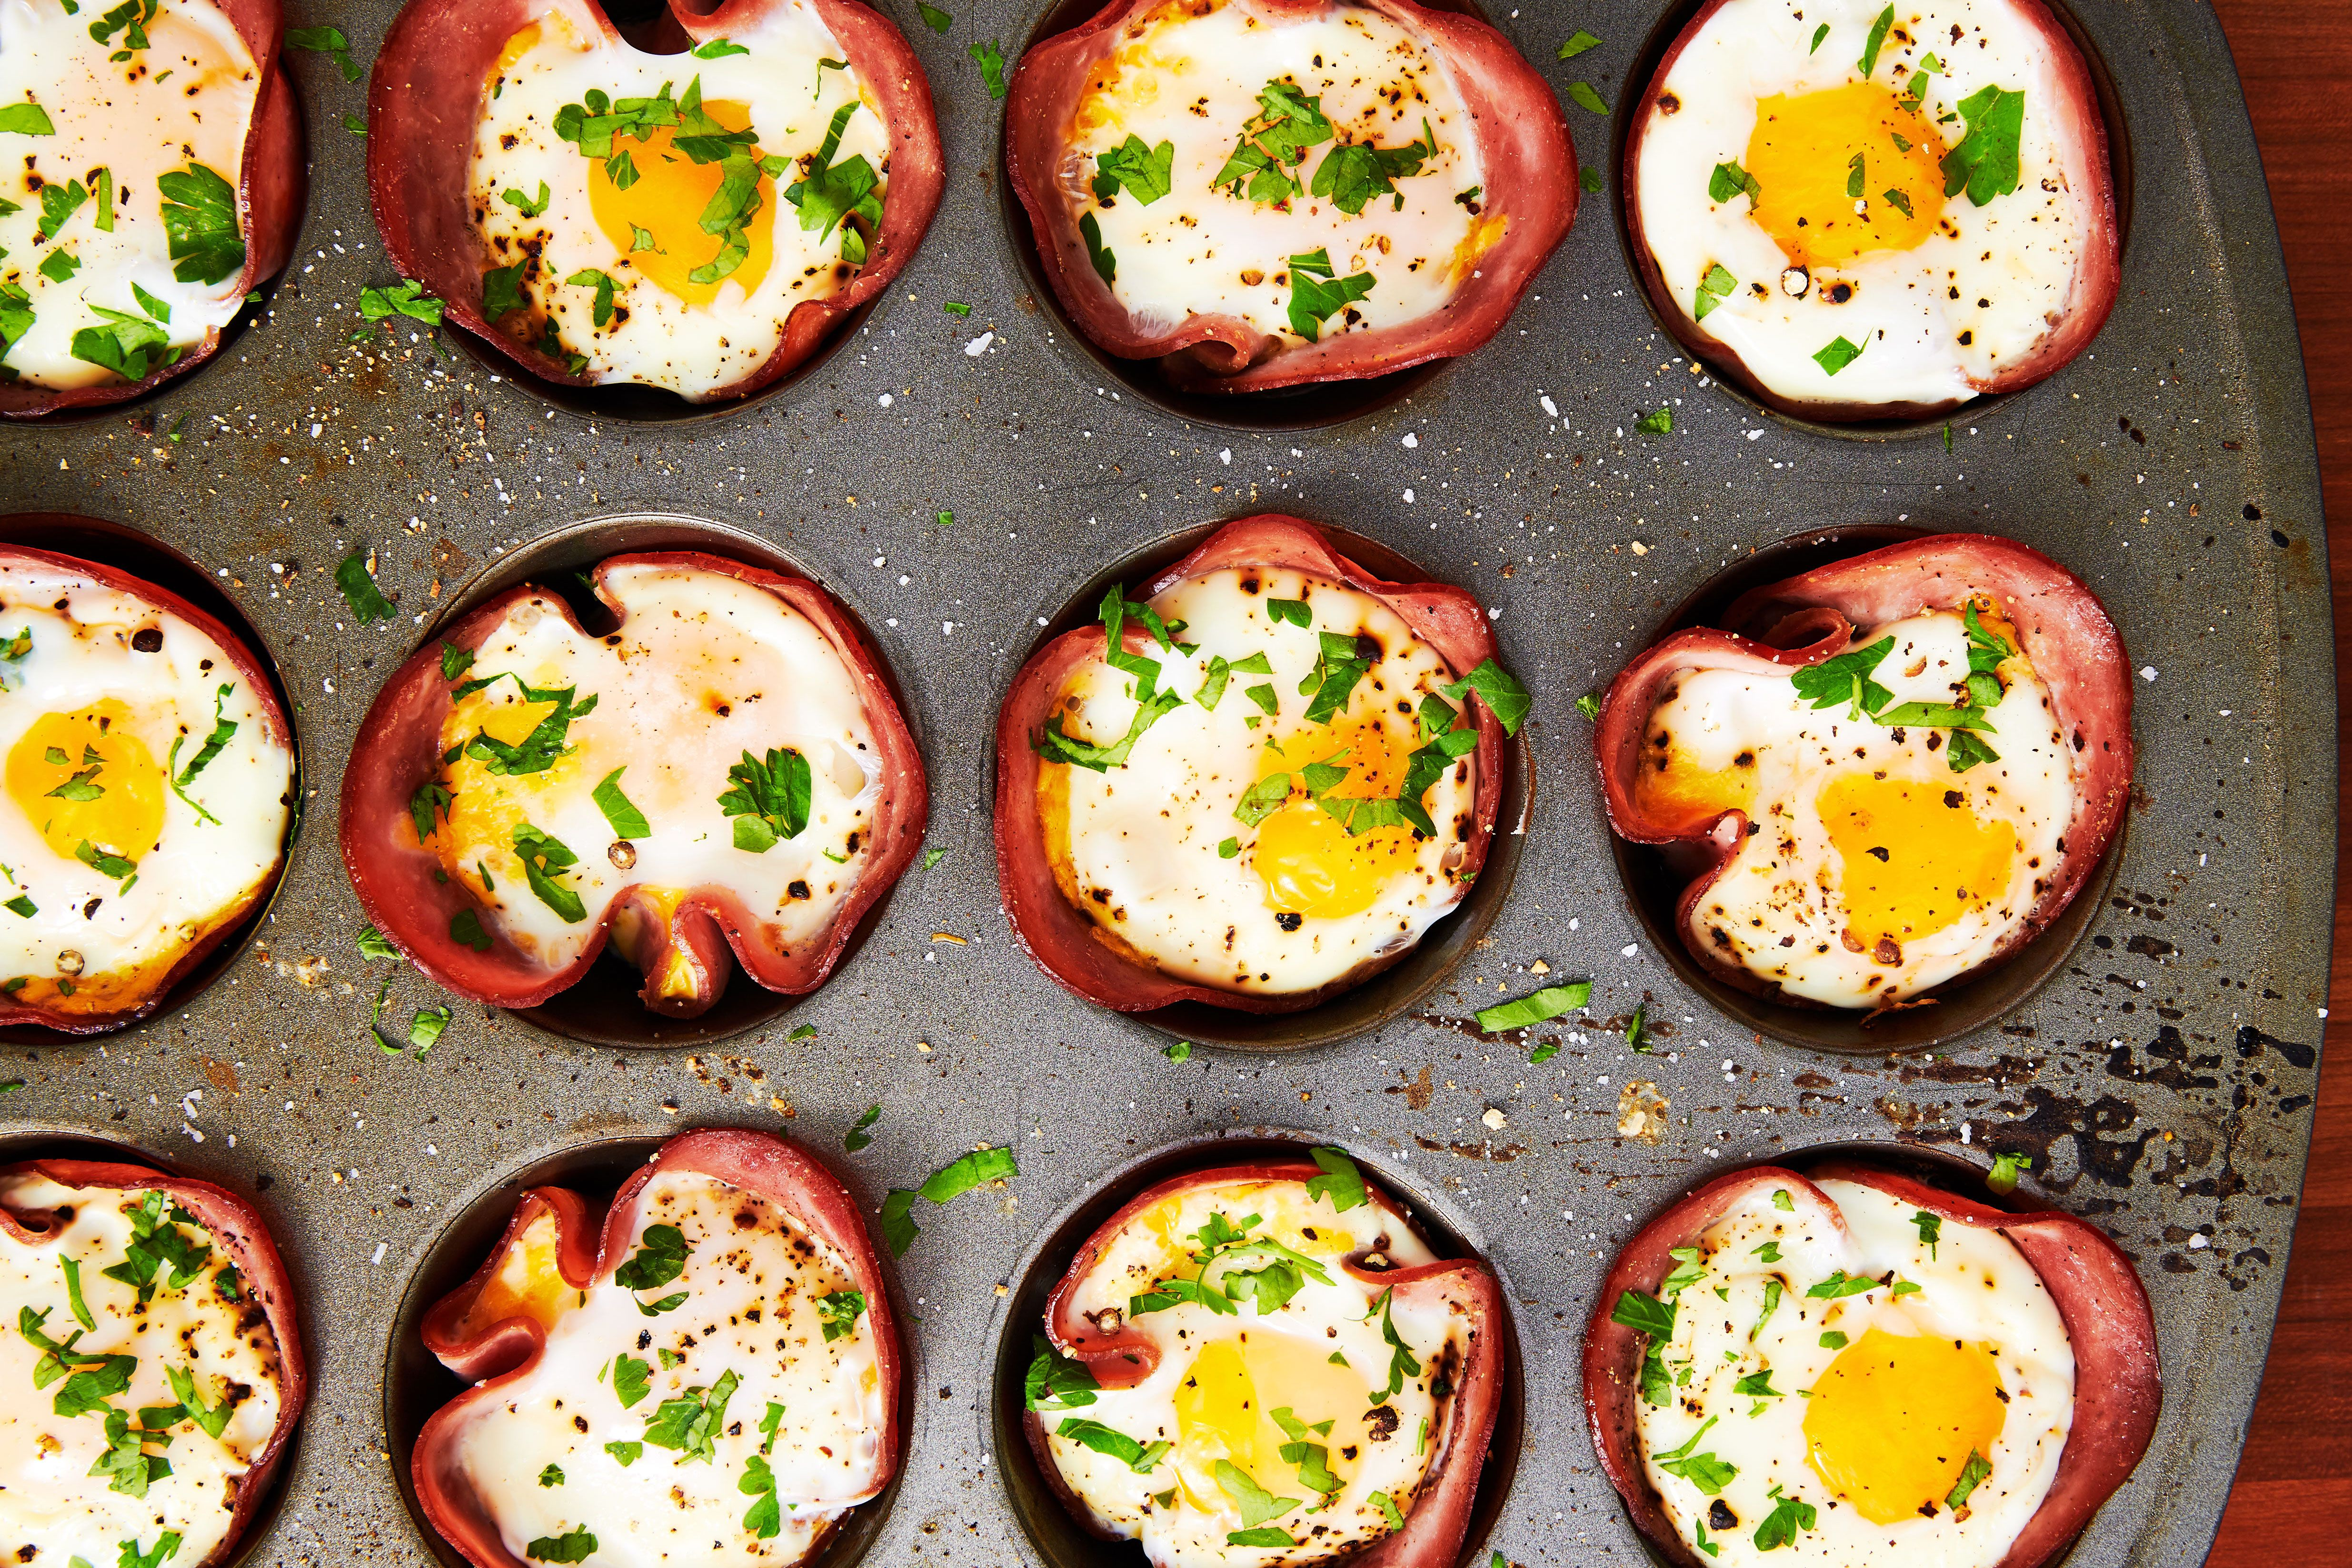 11 Easy Low-Calorie Breakfasts To Start Your Day Off On The Right Foot